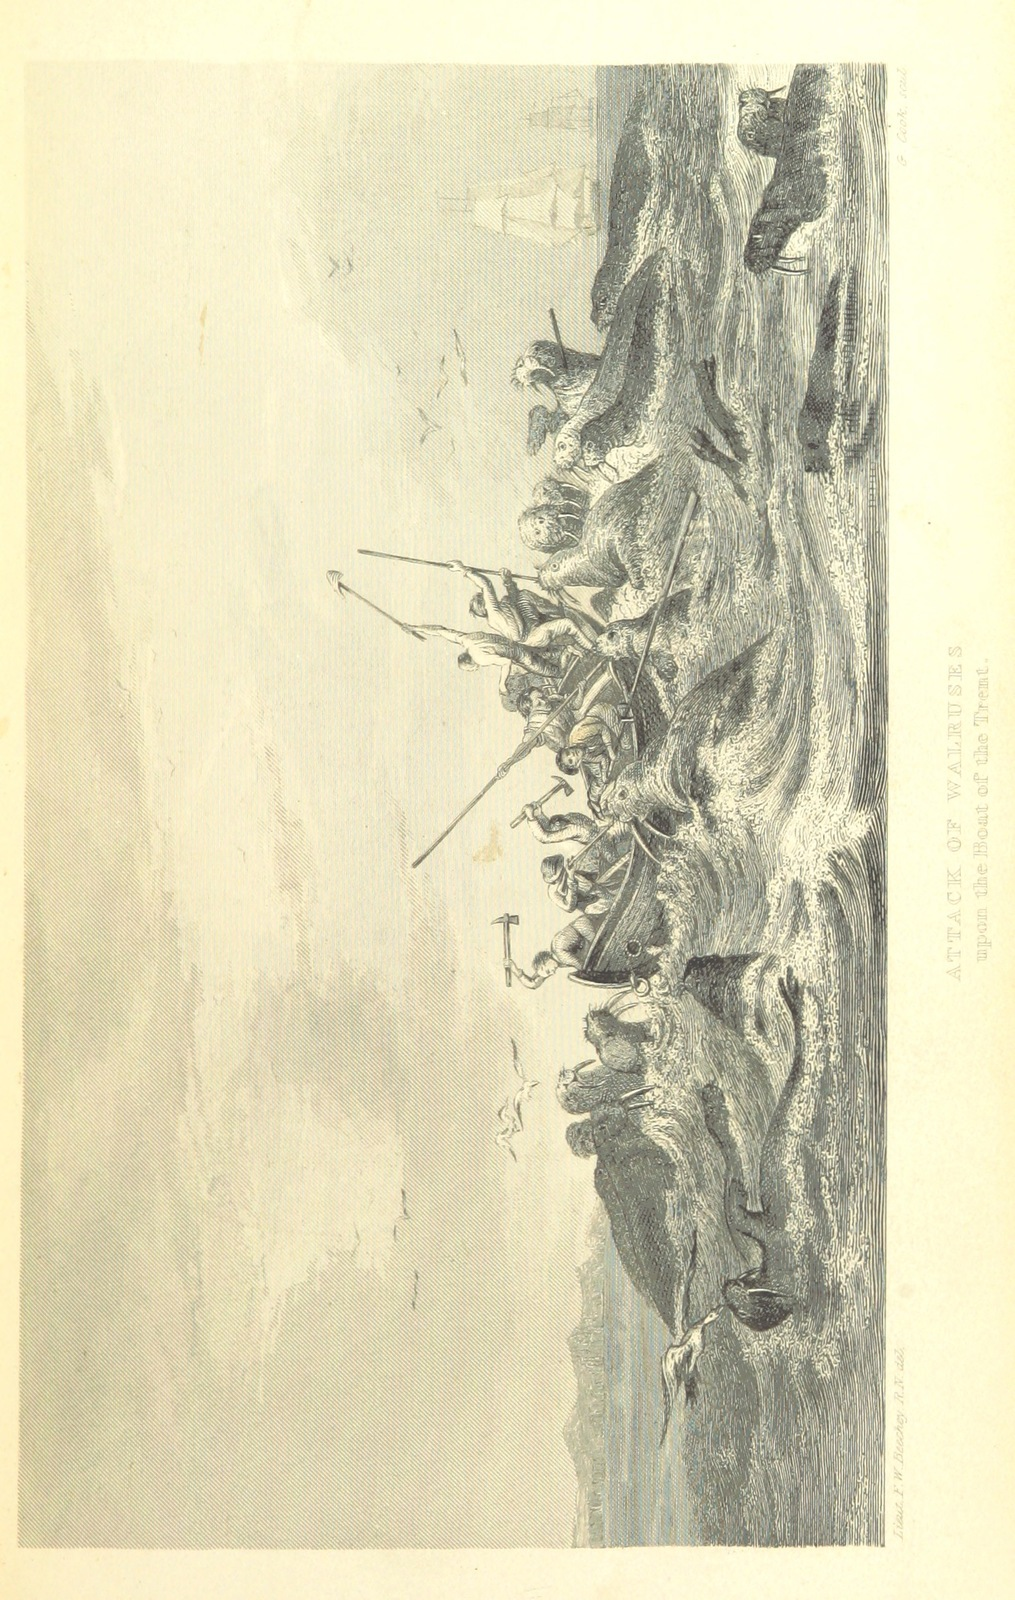 """hunters from """"A Voyage of Discovery towards the North Pole, performed in His Majesty's Ships Dorothea and Trent, under the command of Capt. David Buchan, R.N., 1818; to which is added, a summary of all the early attempts to reach the Pacific by way of the Pole. [With plates.]"""""""